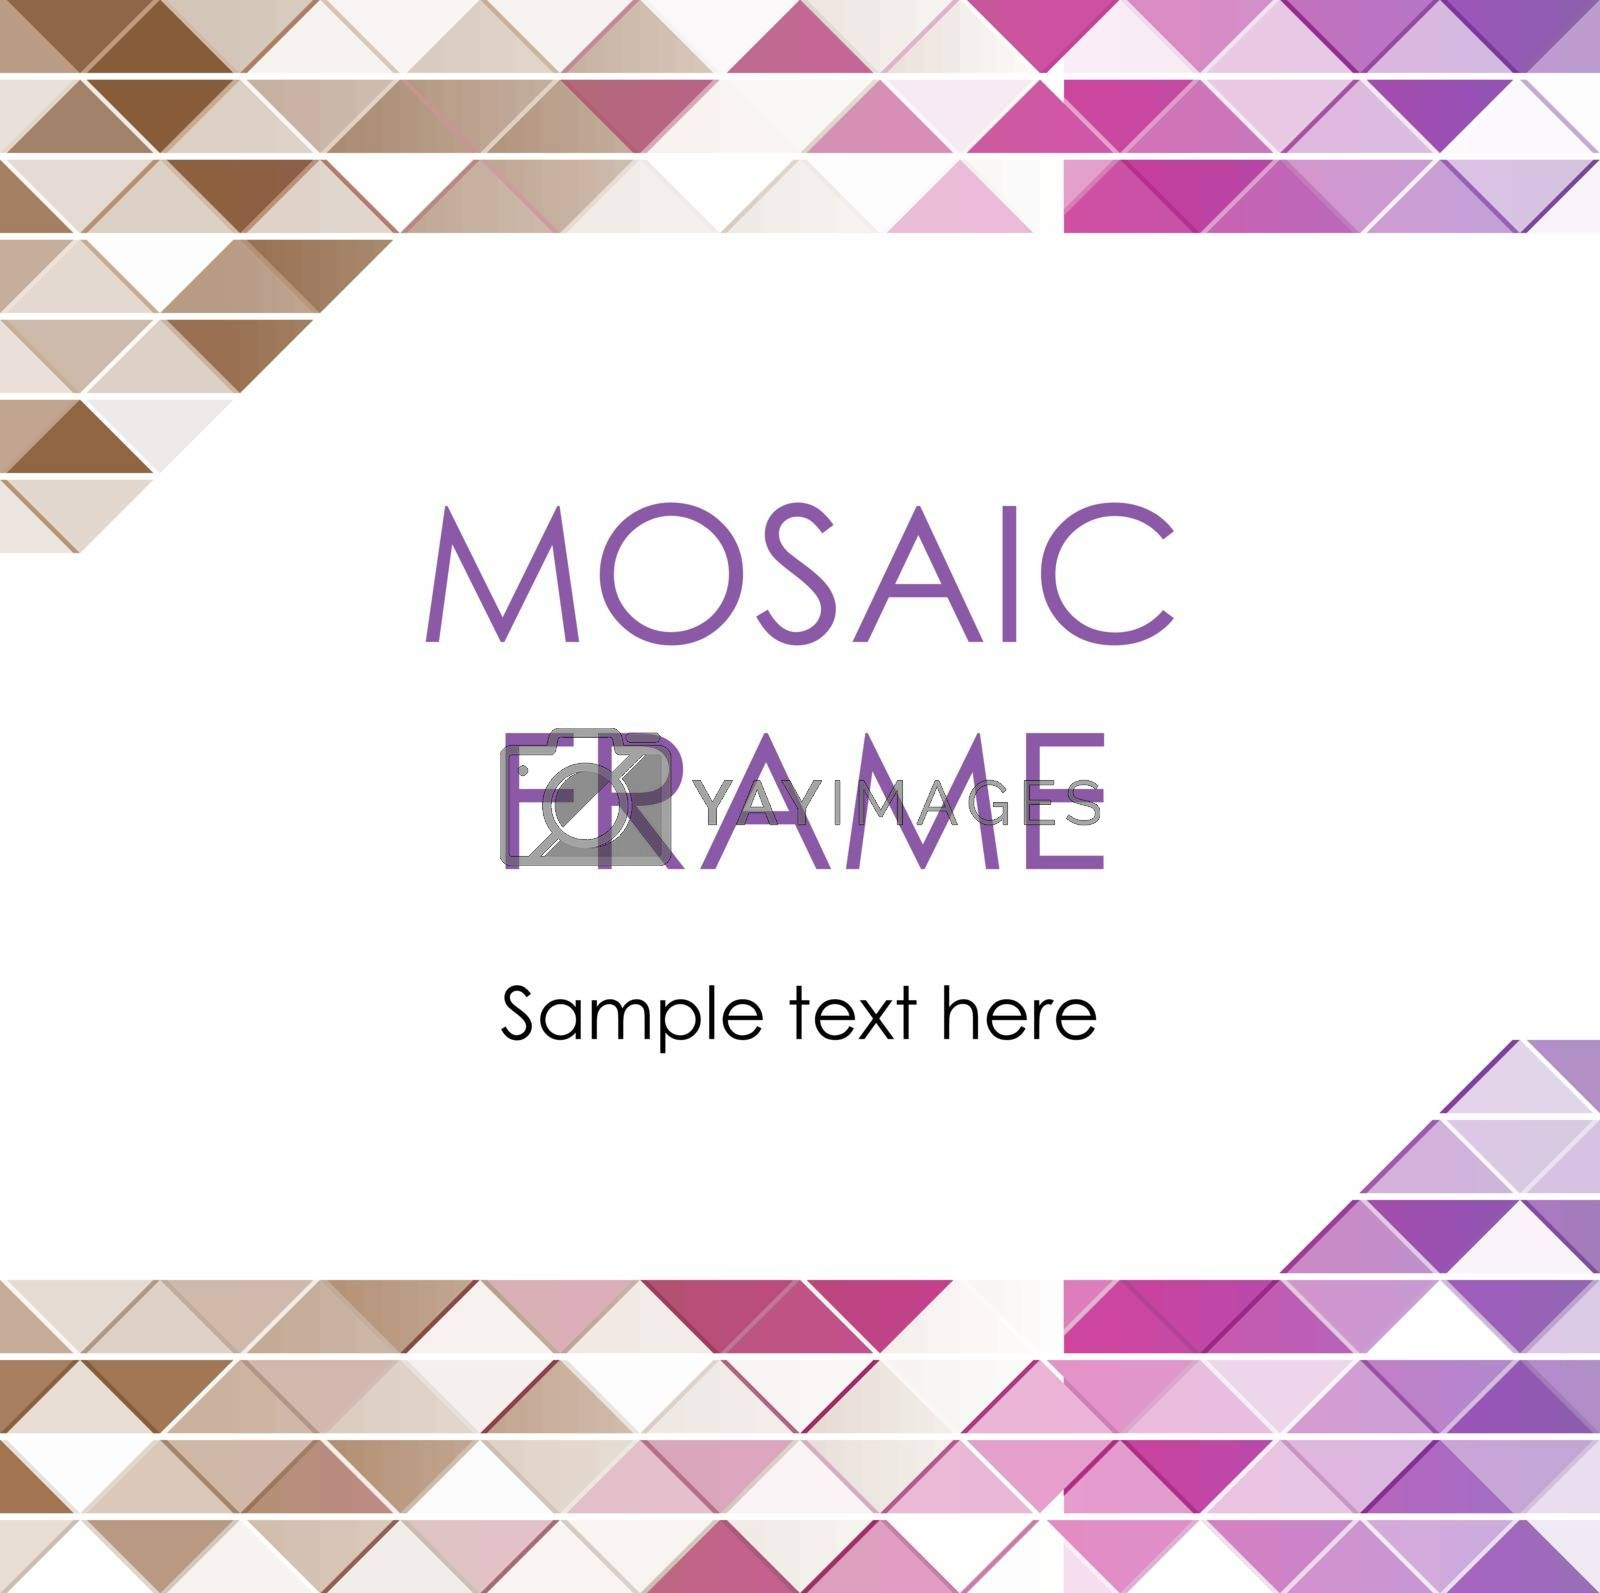 Creative Triangular Polygonal Colorful Mosaic Frame. Useful for brochure cover. Vector illustration